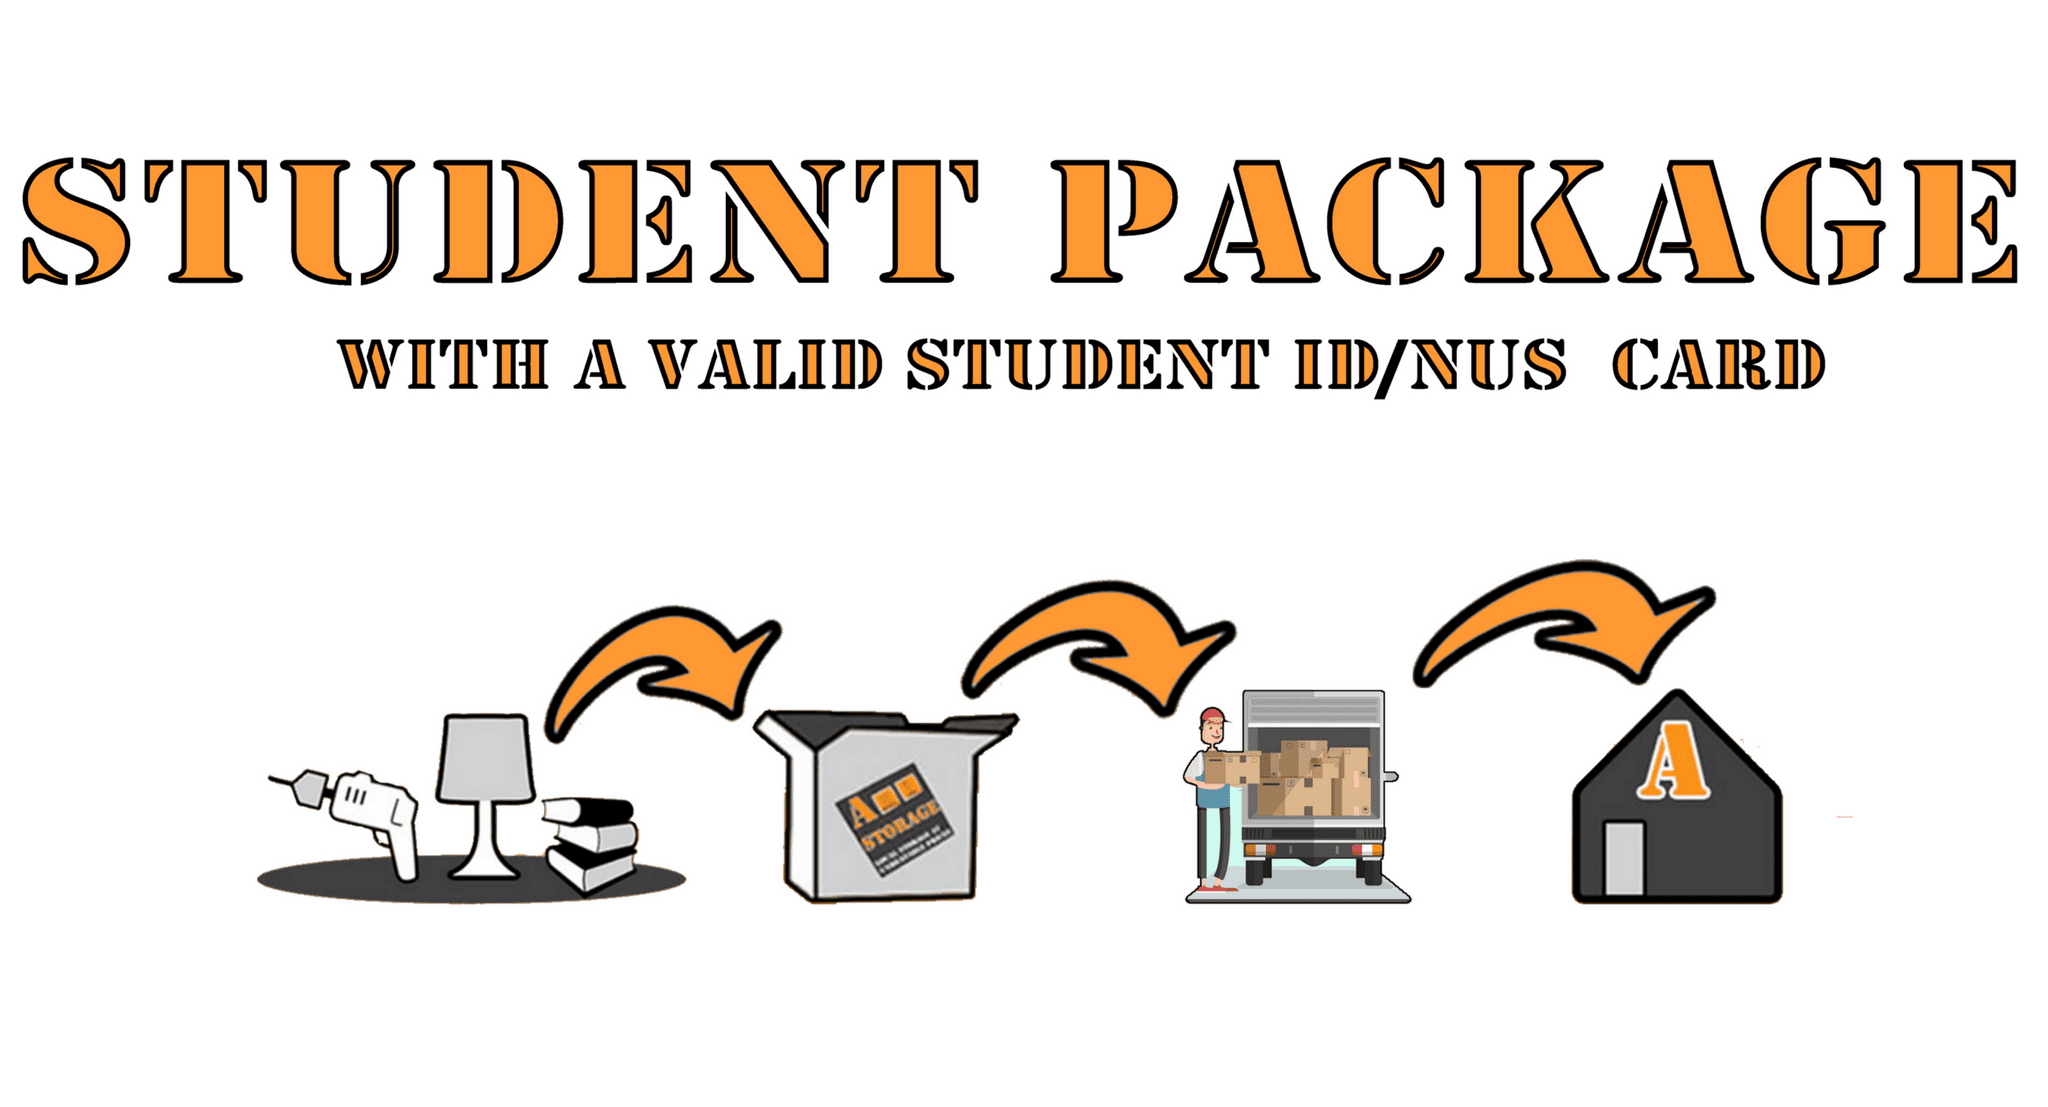 Student Package header image